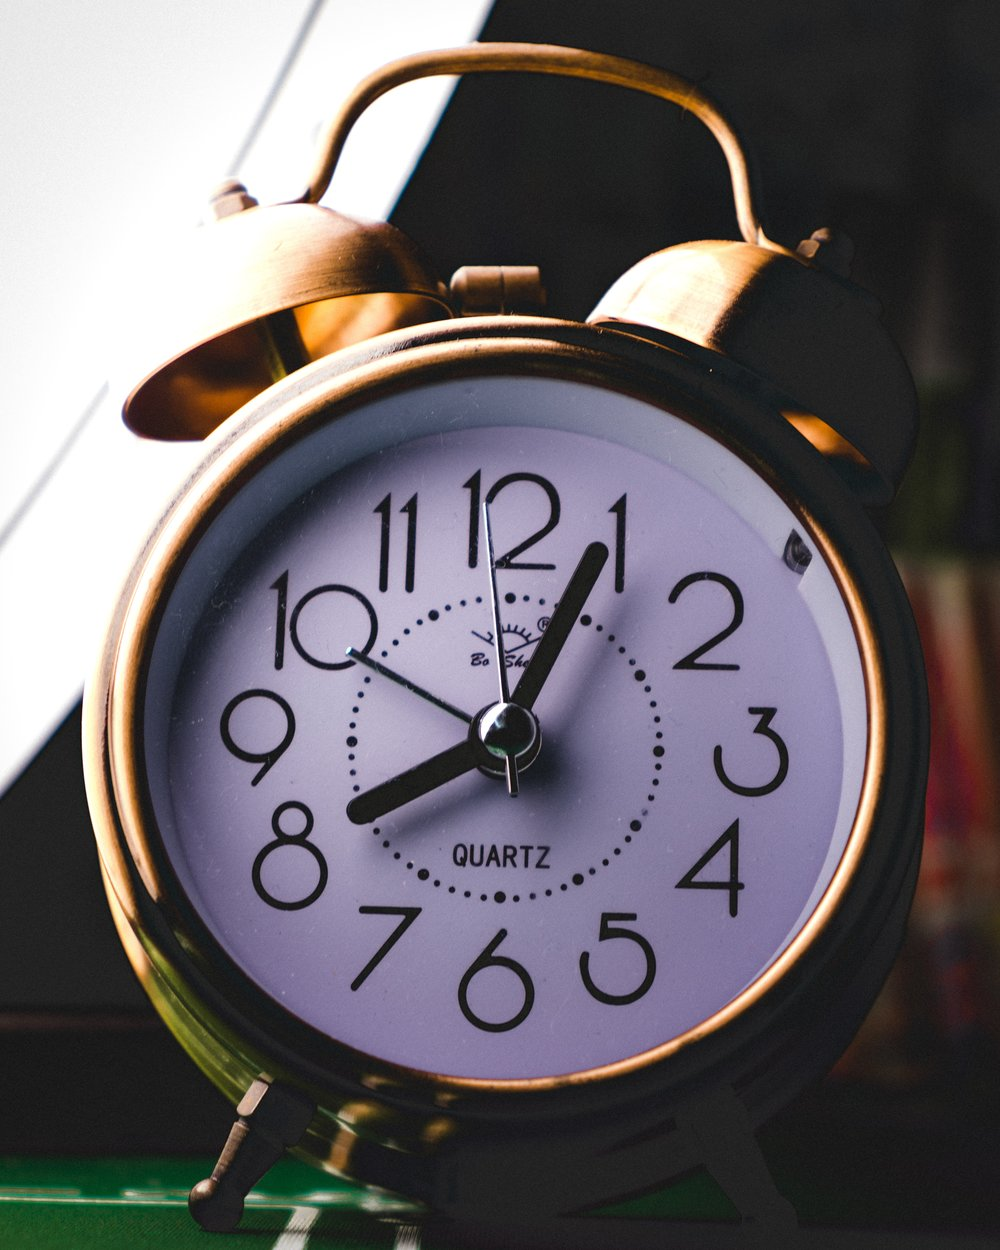 1) Regularity - It's a good idea to go to bed at the same time and wake at the same time even if you've had a bad night of sleep or if it's the weekend. This means that your circadian rhythm (sleep/wake cycle) is maintained.